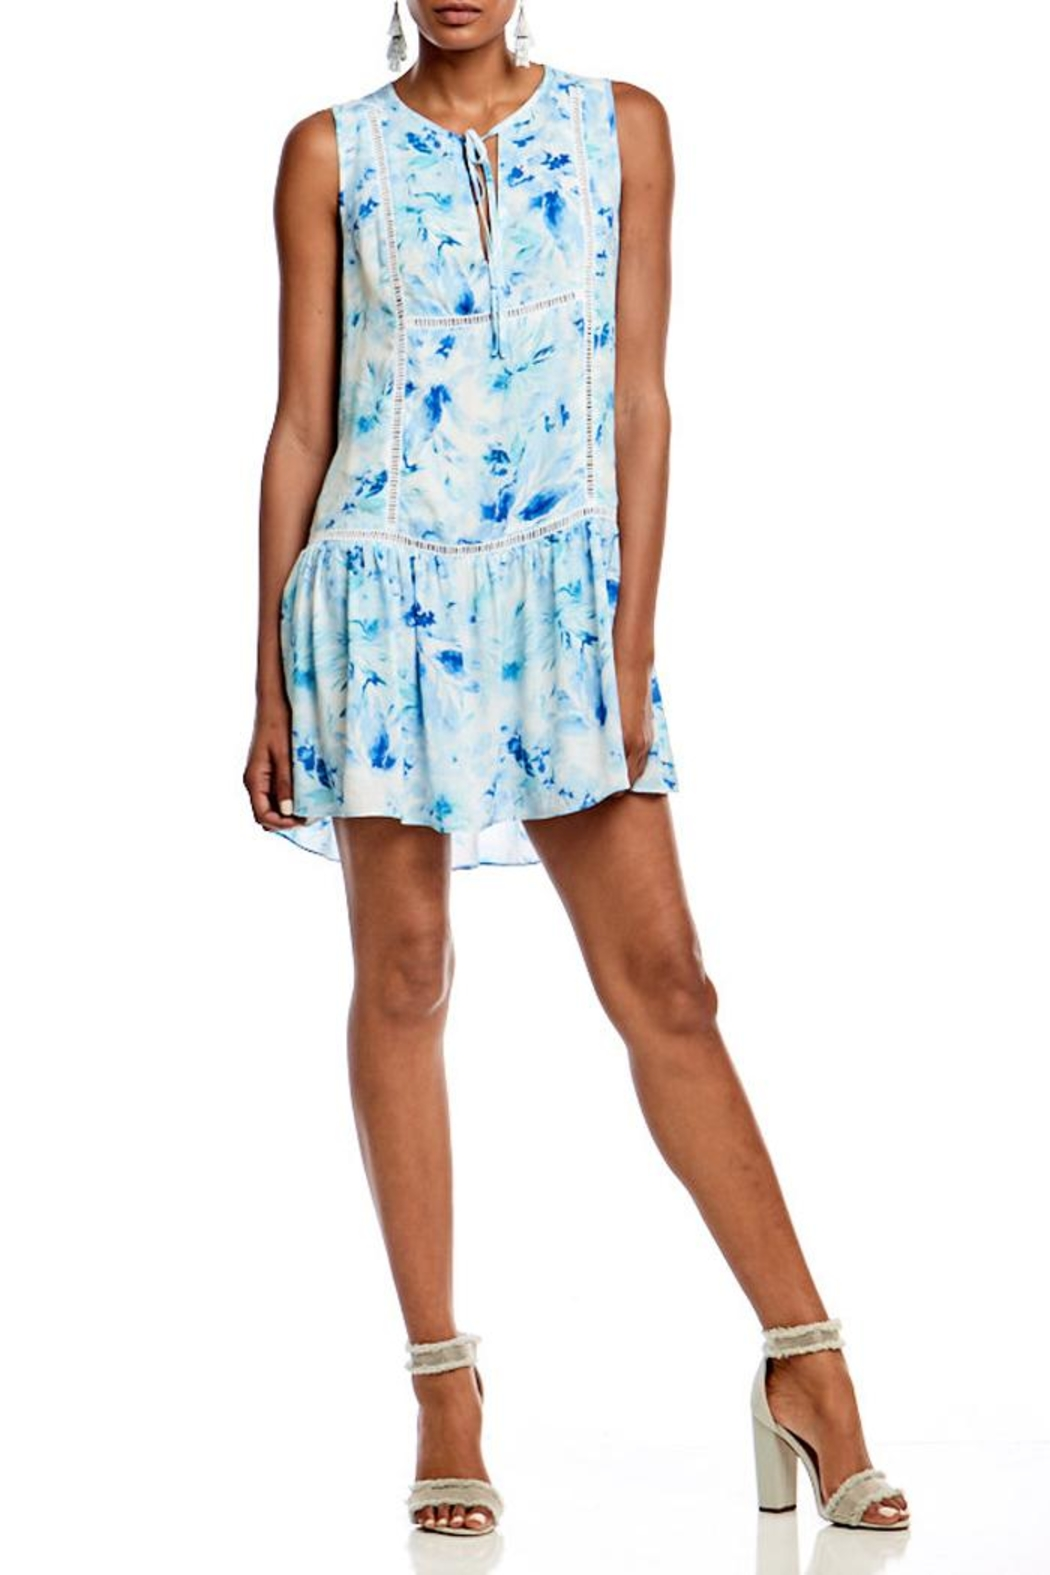 Asher by Fab'rik Lincoln Dress Blue - Back Cropped Image